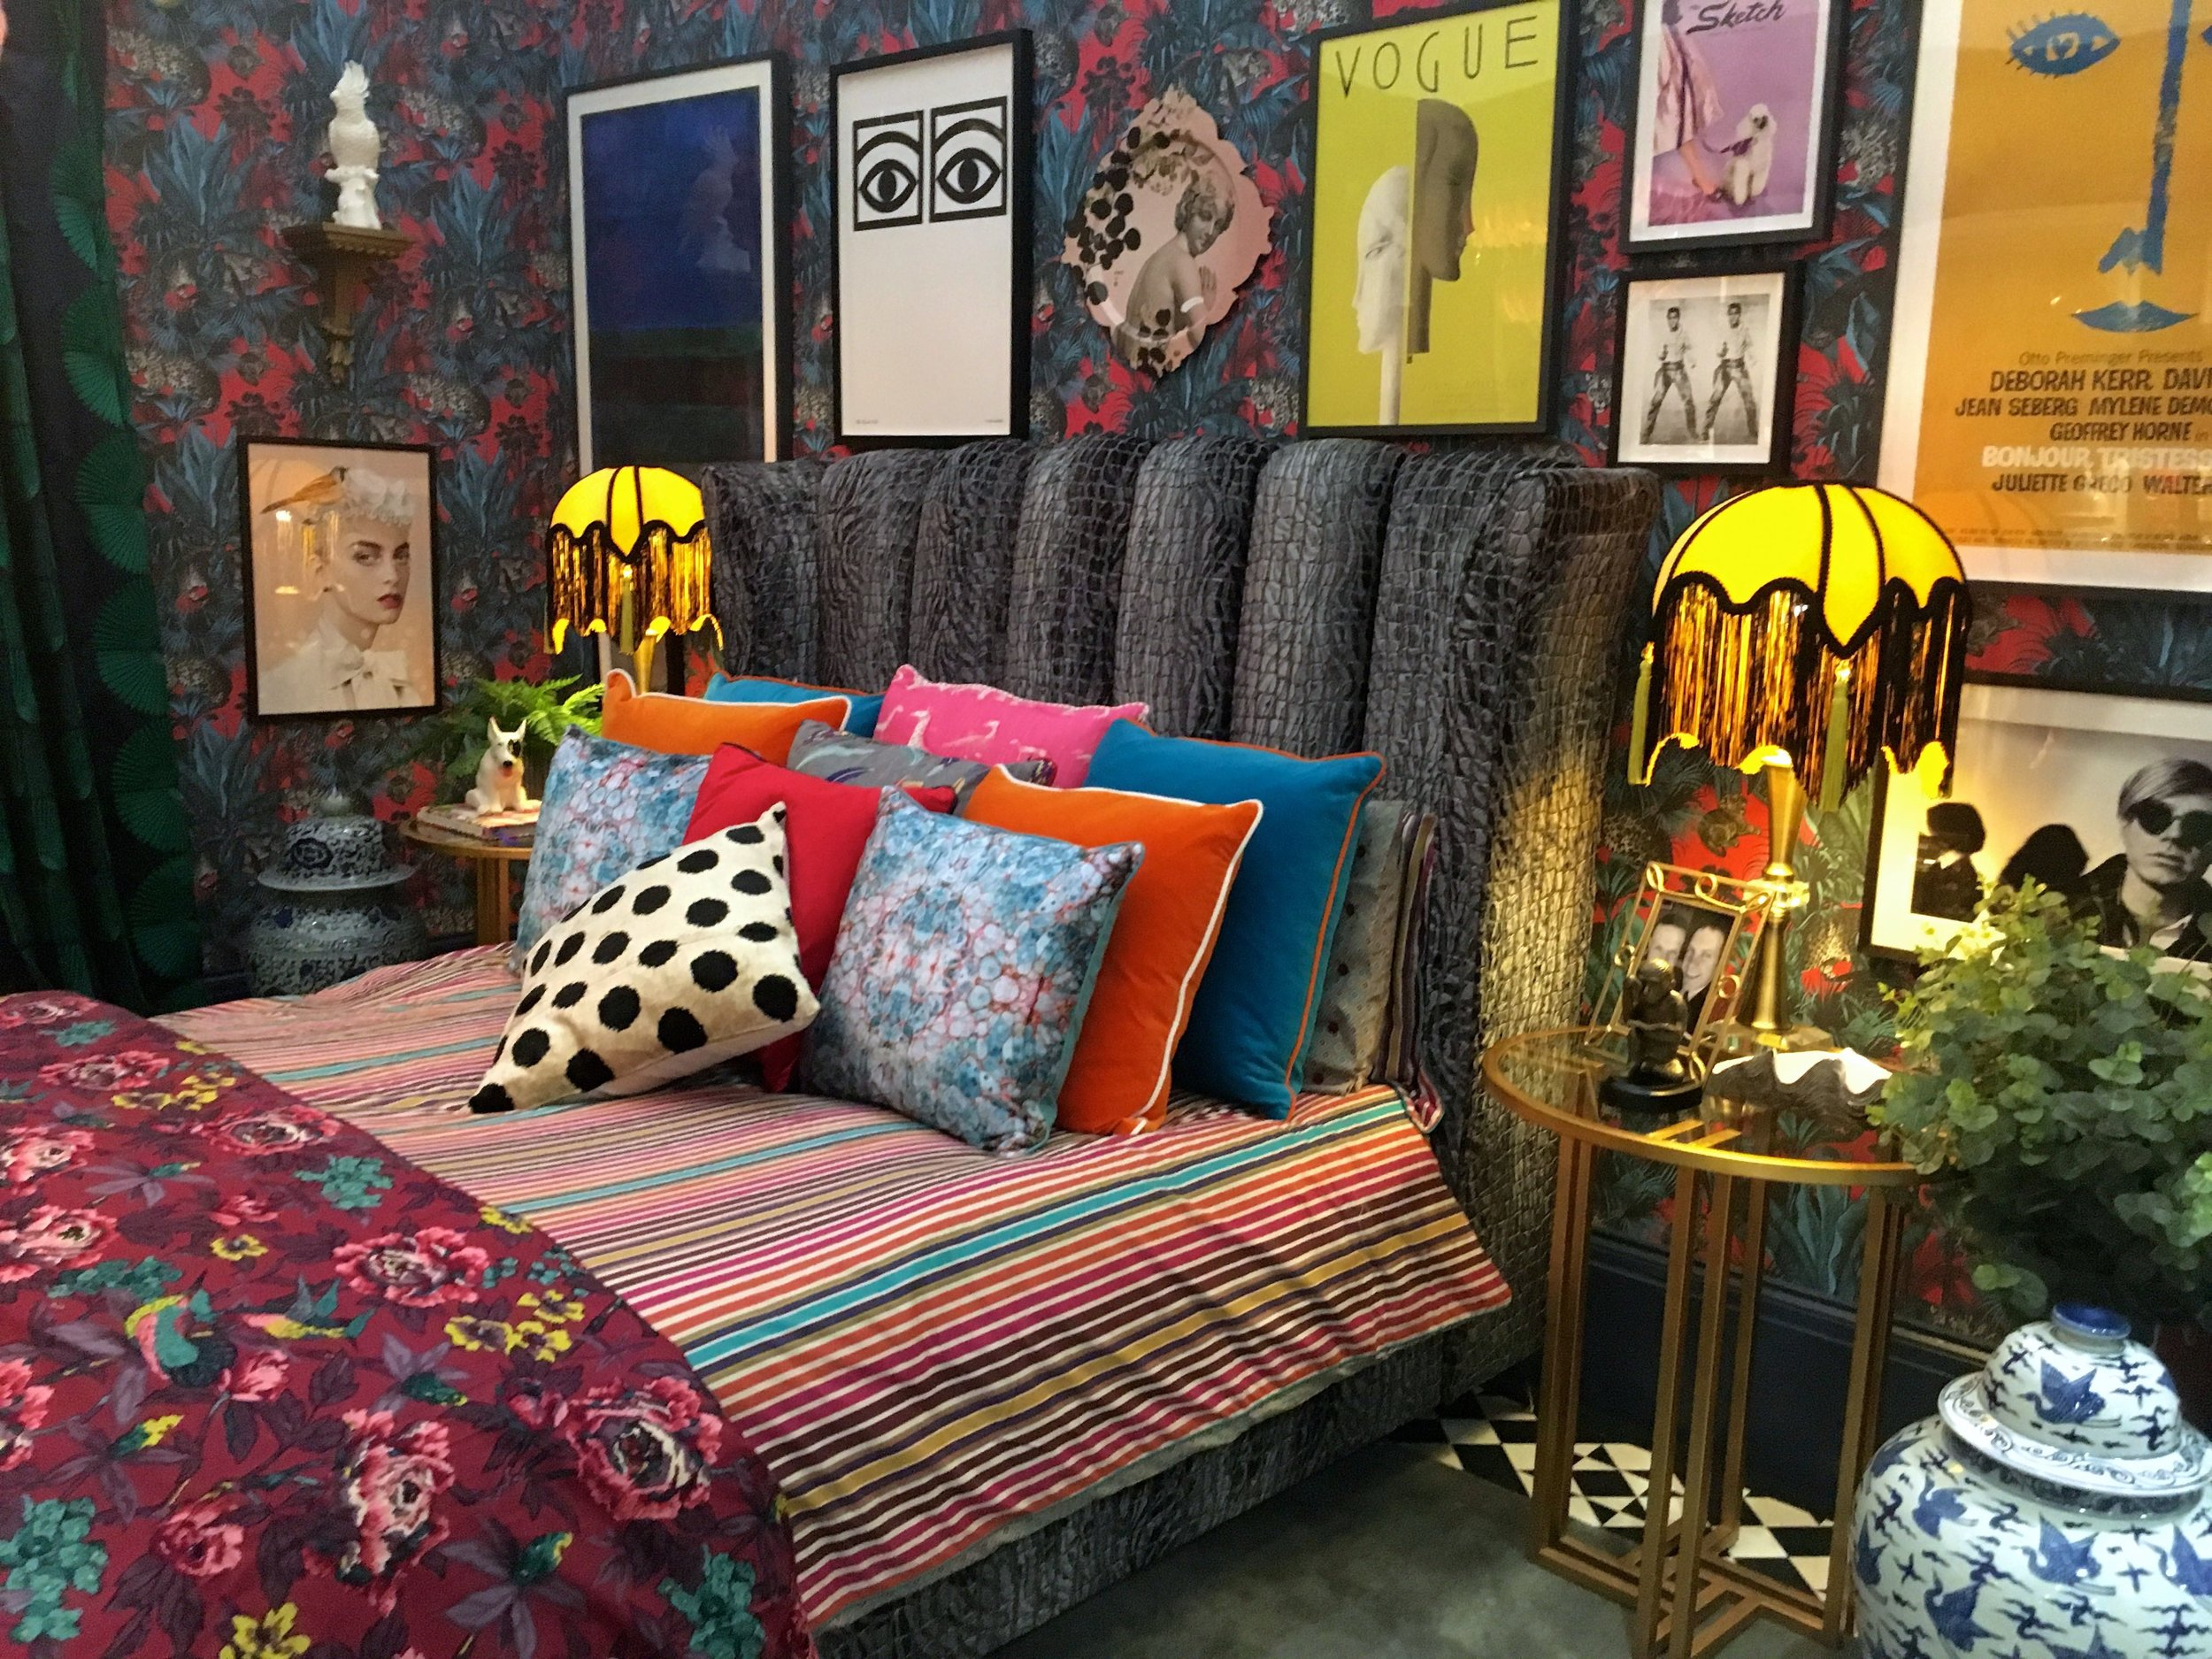 Even the bed and bedding are colourful